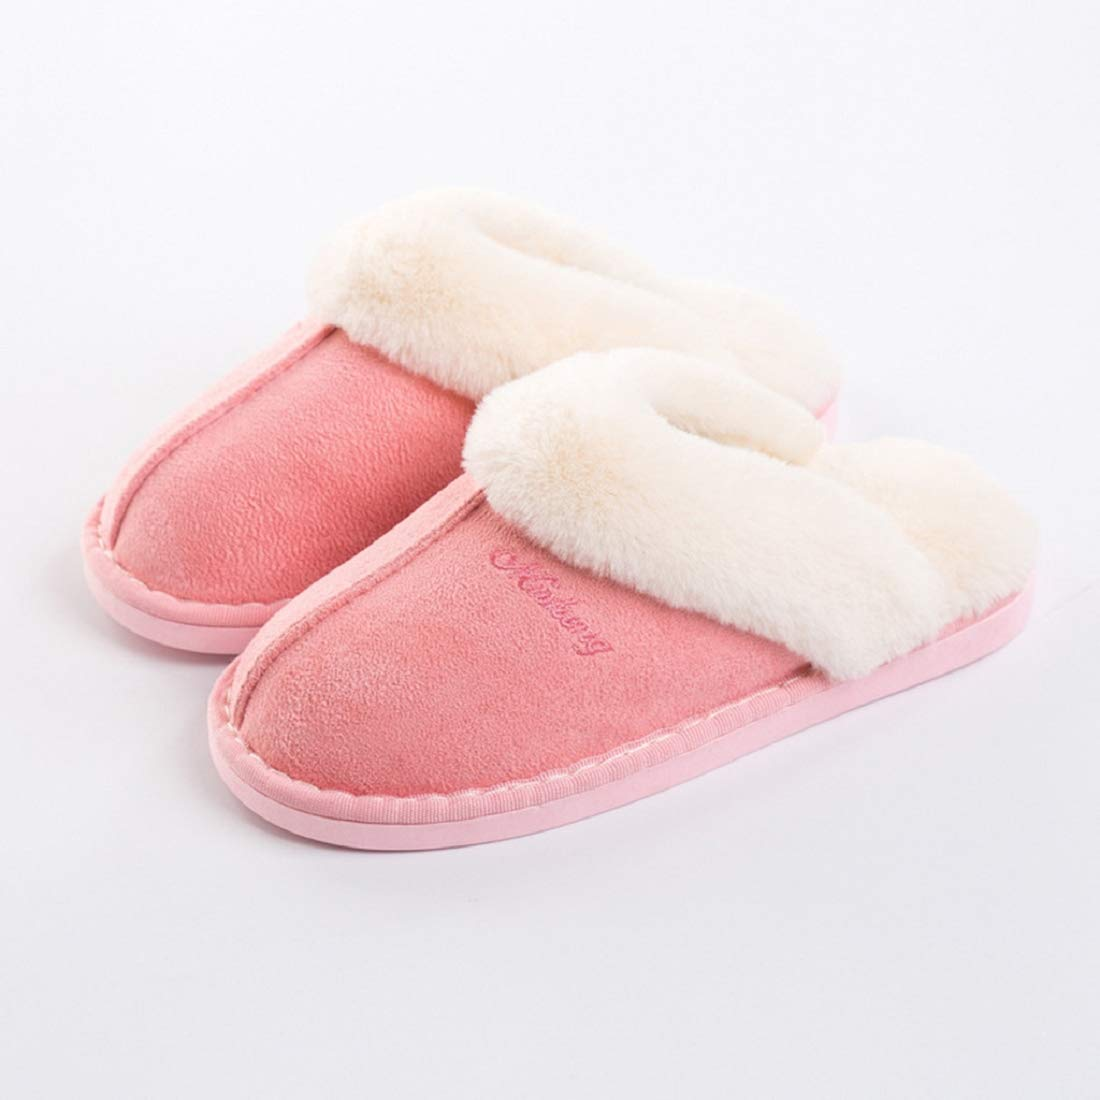 Bkolouuoe Women Slippers Fluffy Fur Slip On House Slippers Winter Solid Soft and Warm House Shoes for Indoor Outdoor